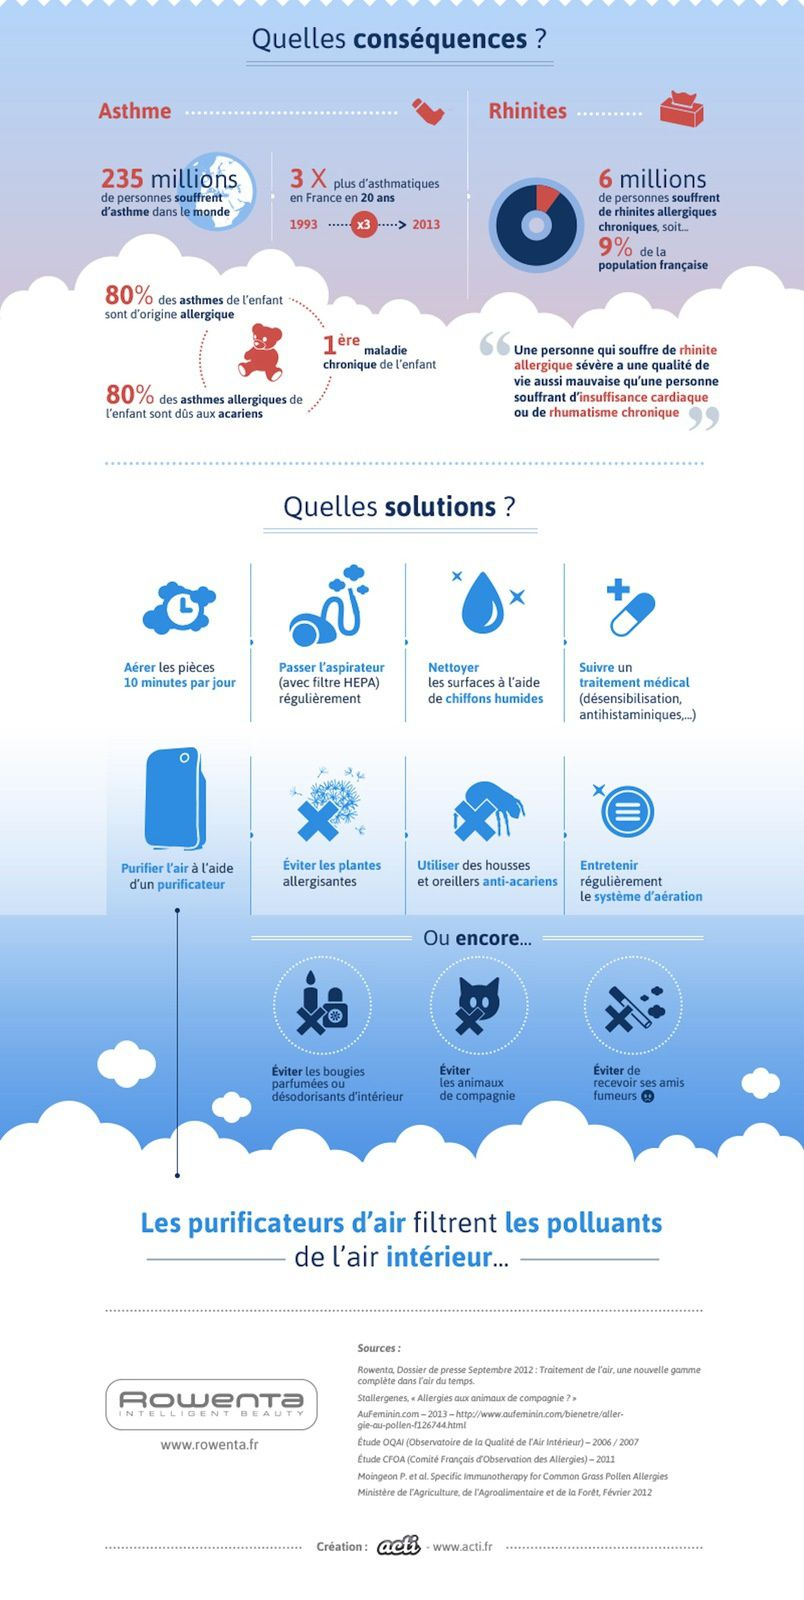 Et si on parlait qualité de l'air ?